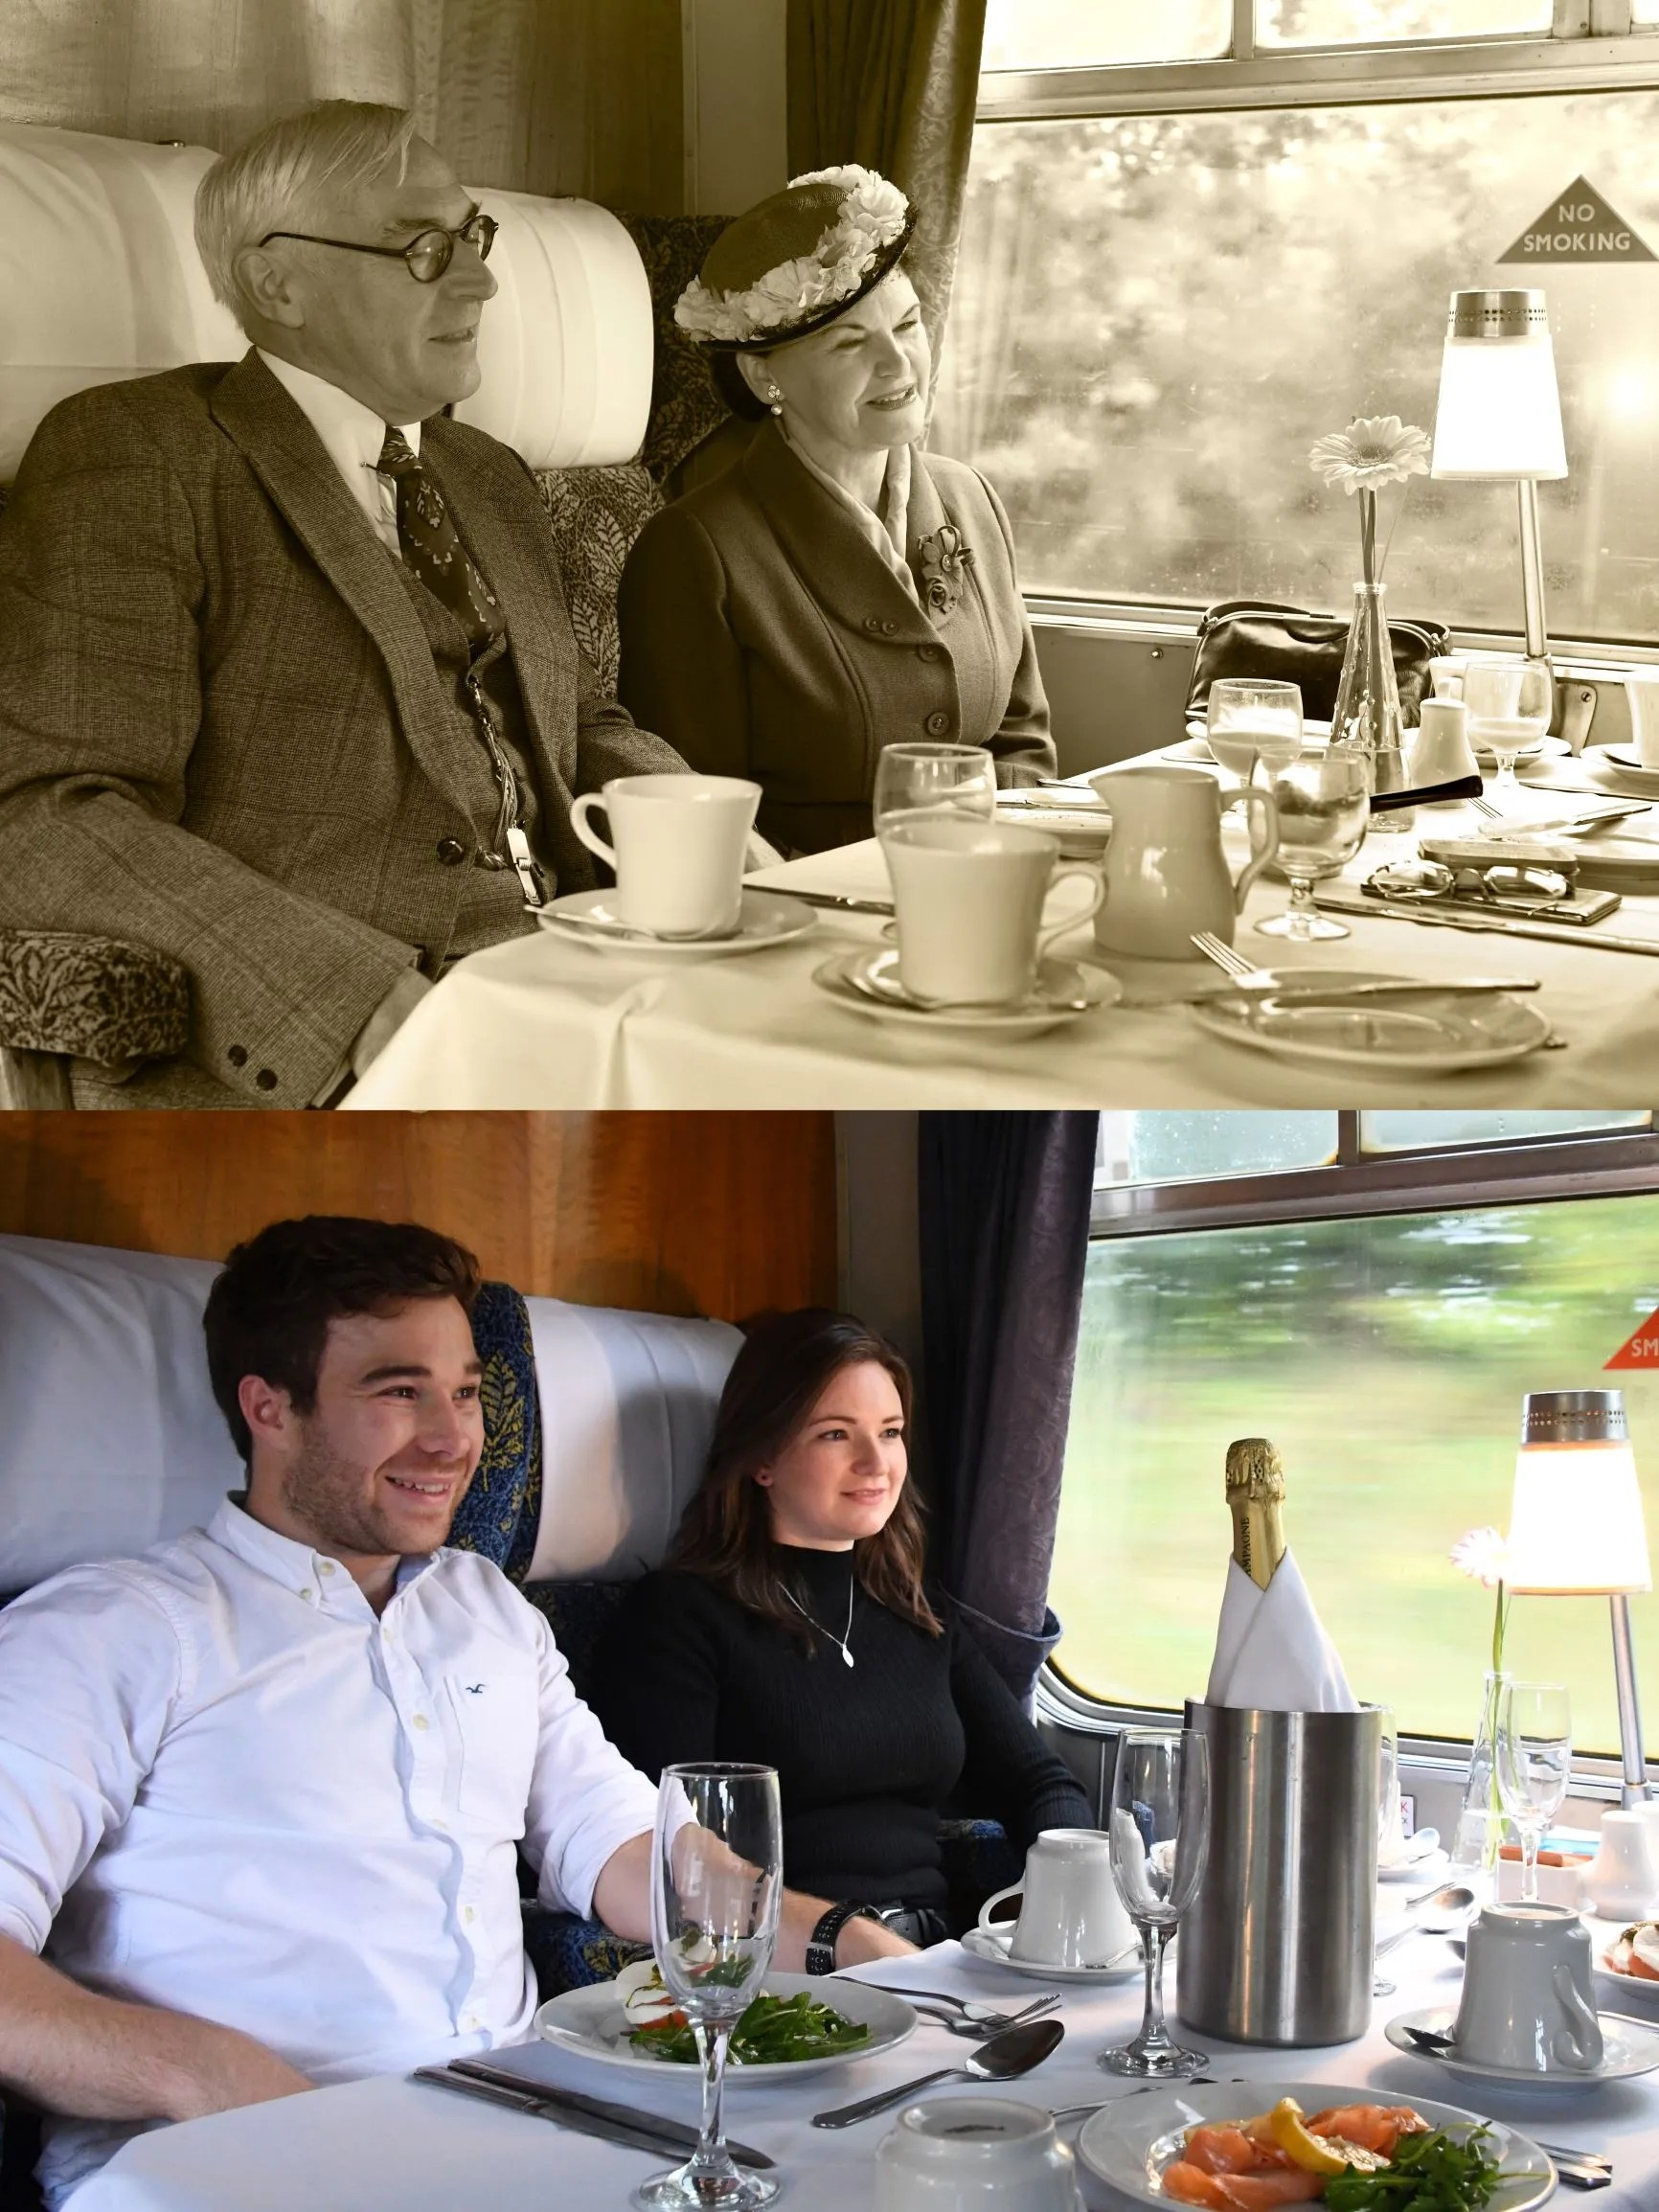 Dinine experience on a heritage train